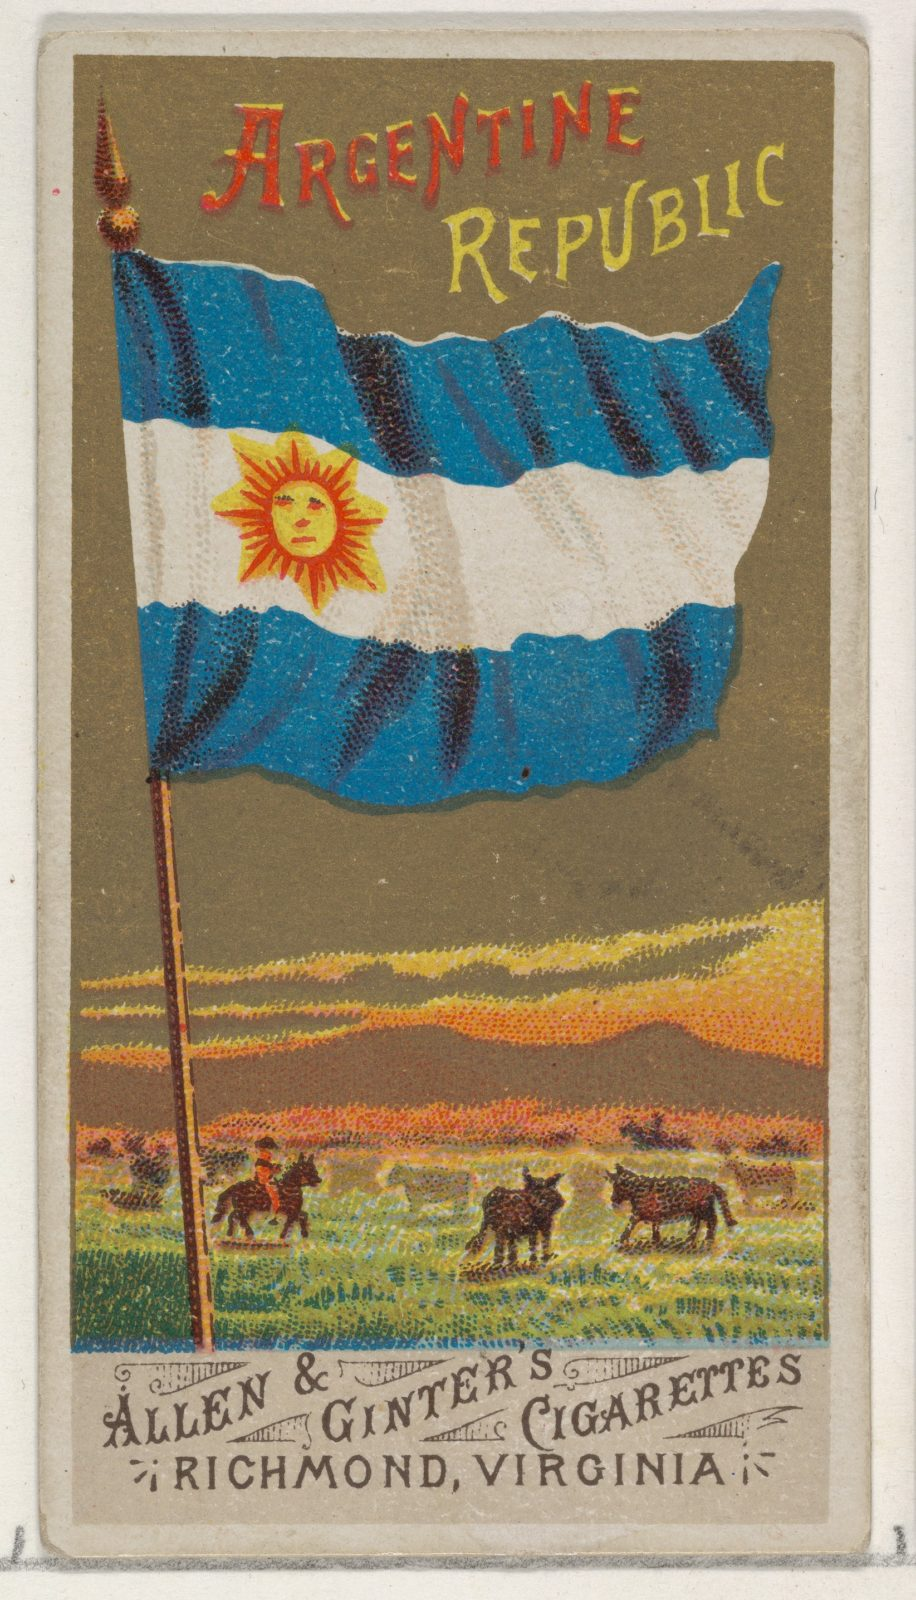 Argentine Republic, from Flags of All Nations, Series 1 (N9) for Allen & Ginter Cigarettes Brands